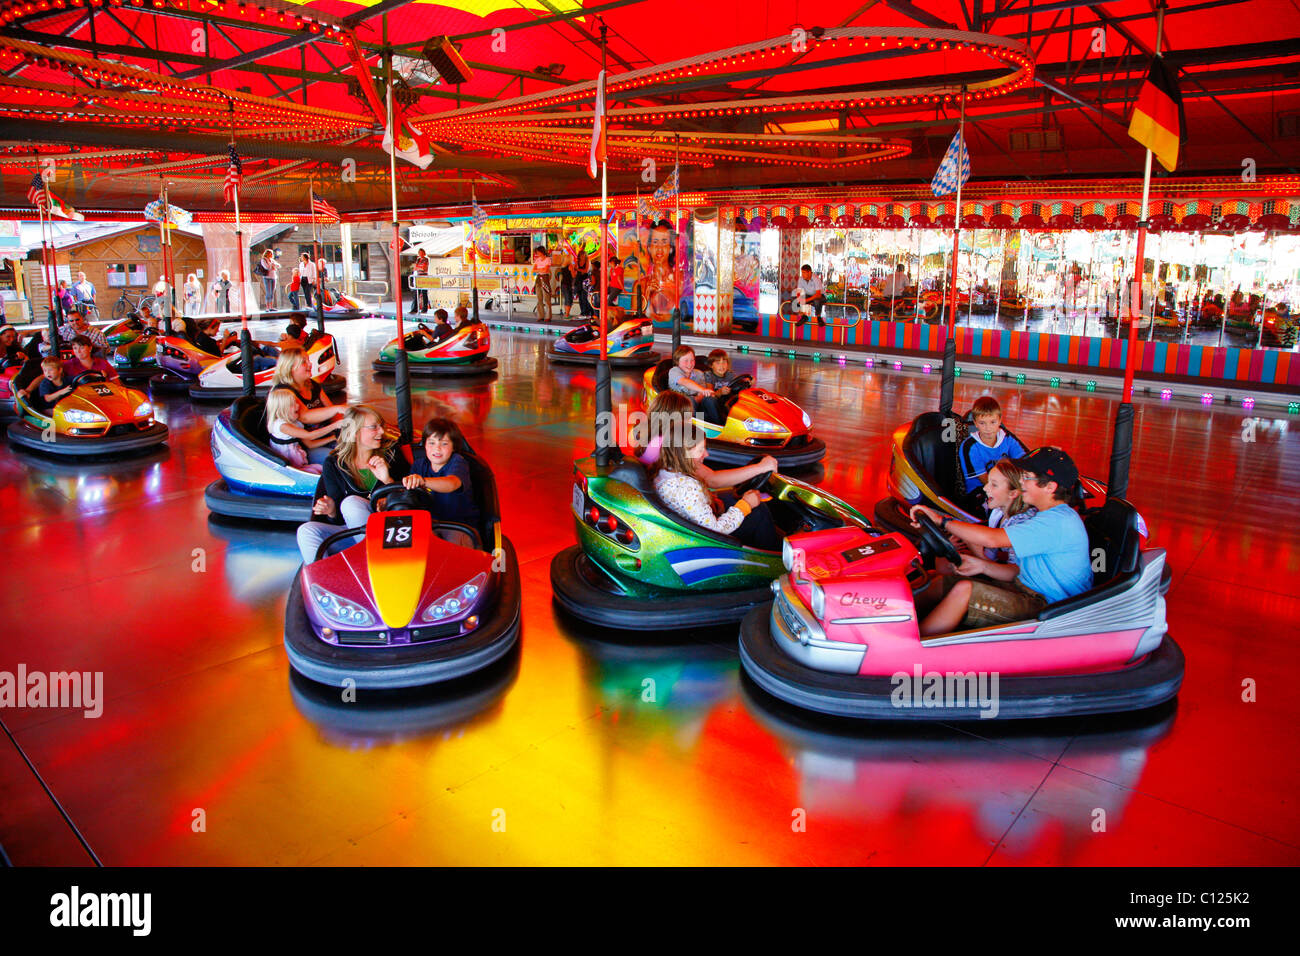 bumper cars folk festival muehldorf am inn bavaria